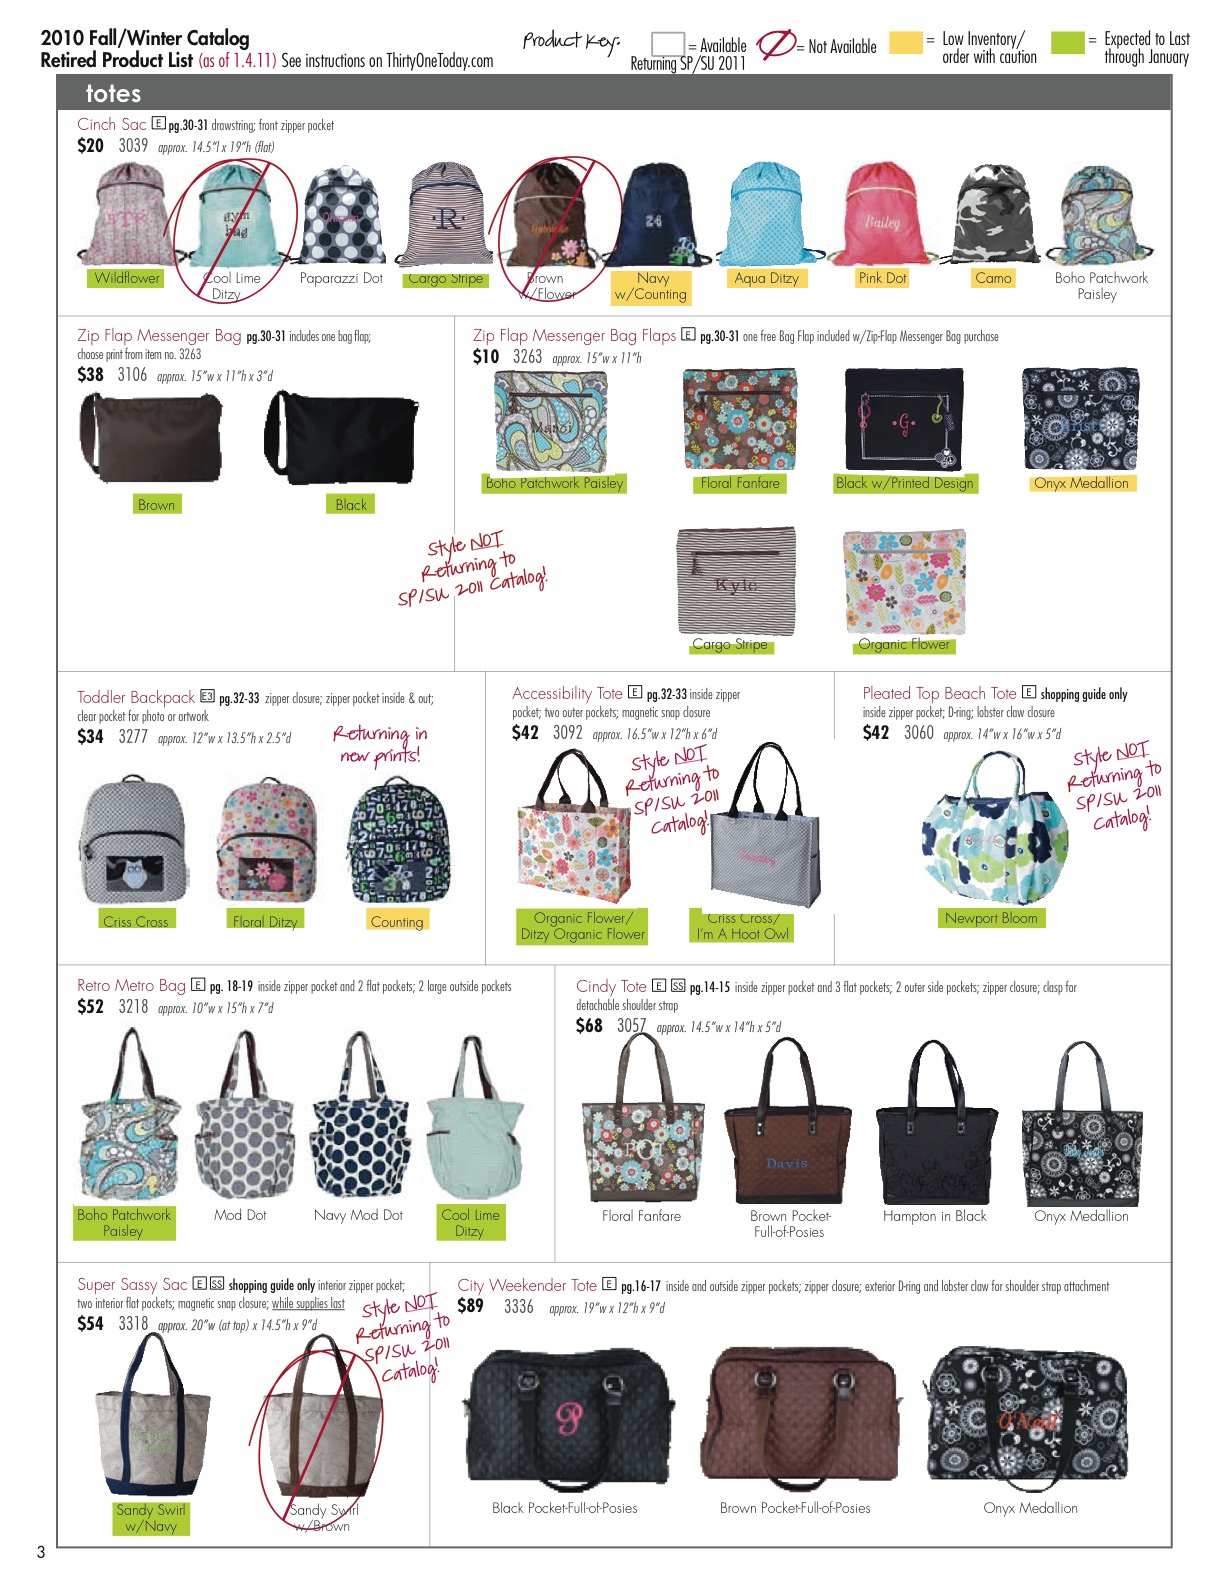 On The Event Thermal Tote Sale Or You May Call Email Me Your Order Thank For Patience And Understanding During This Time Of Transition